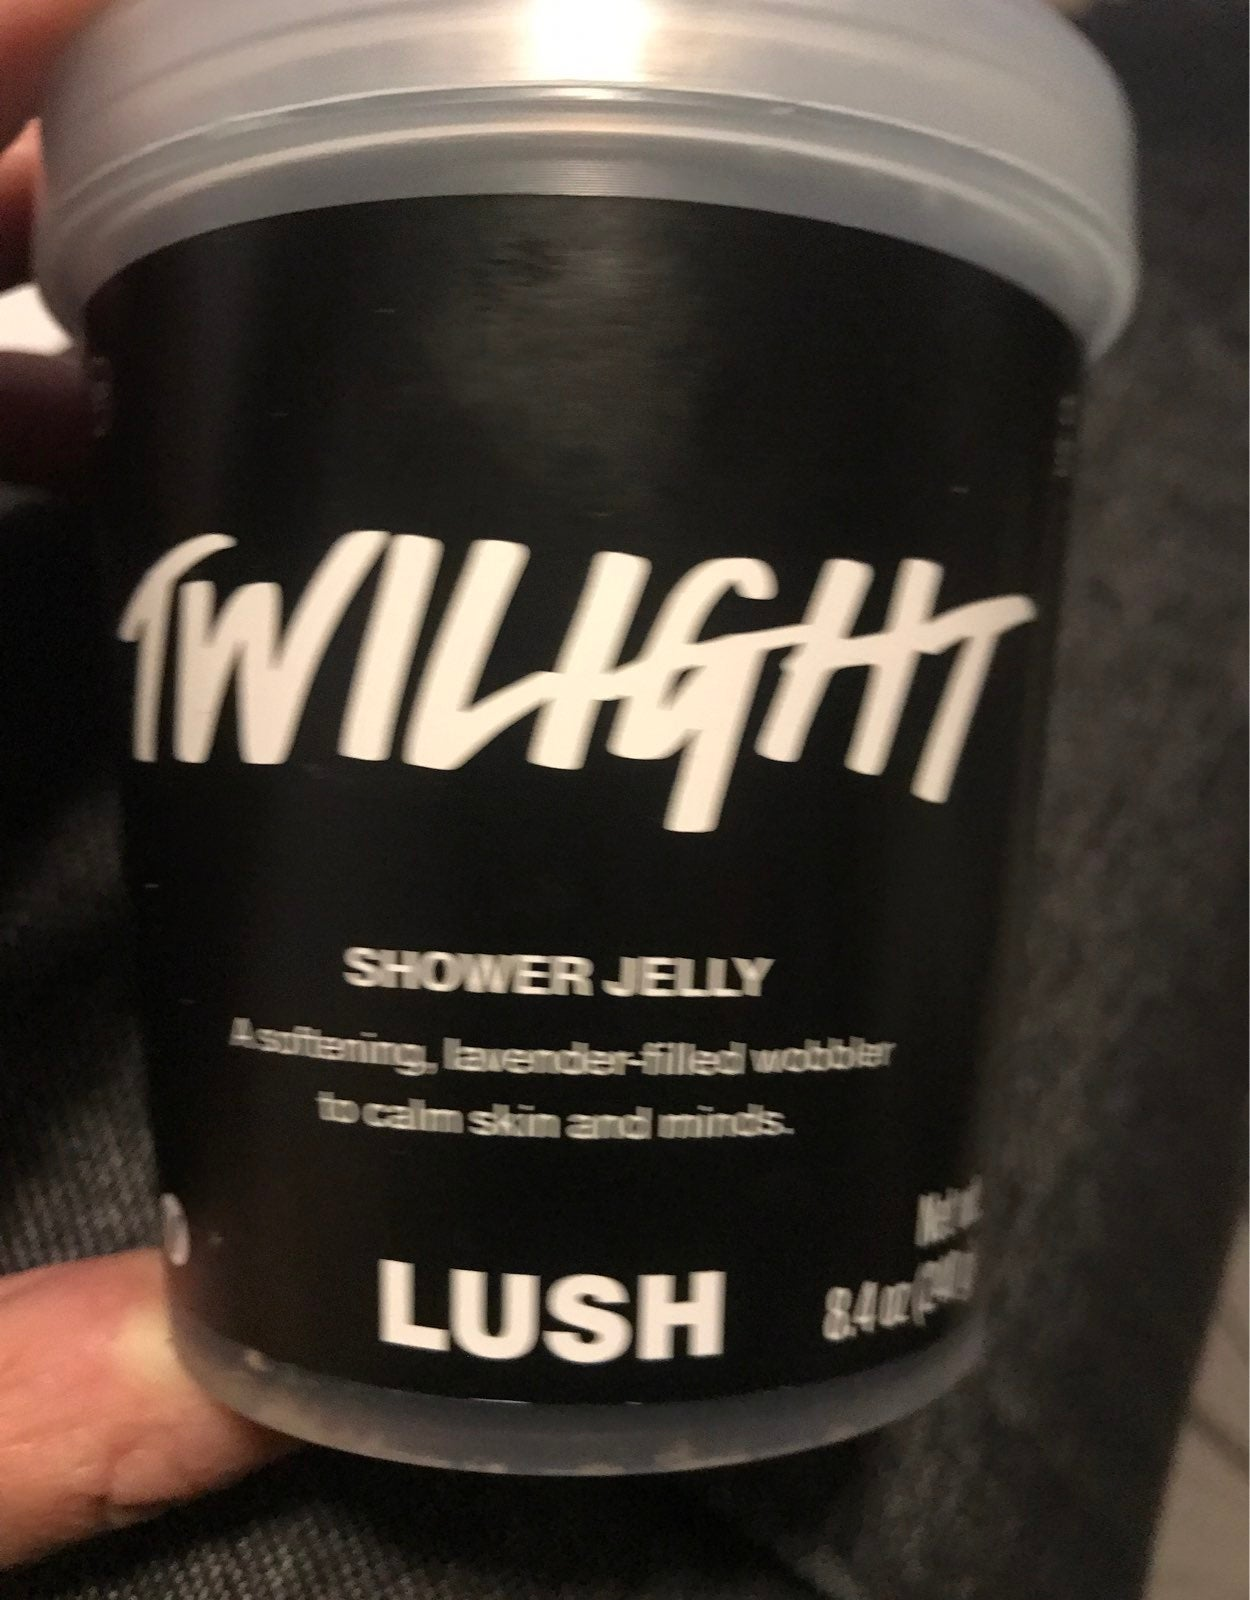 Lush rwilight shower jelly